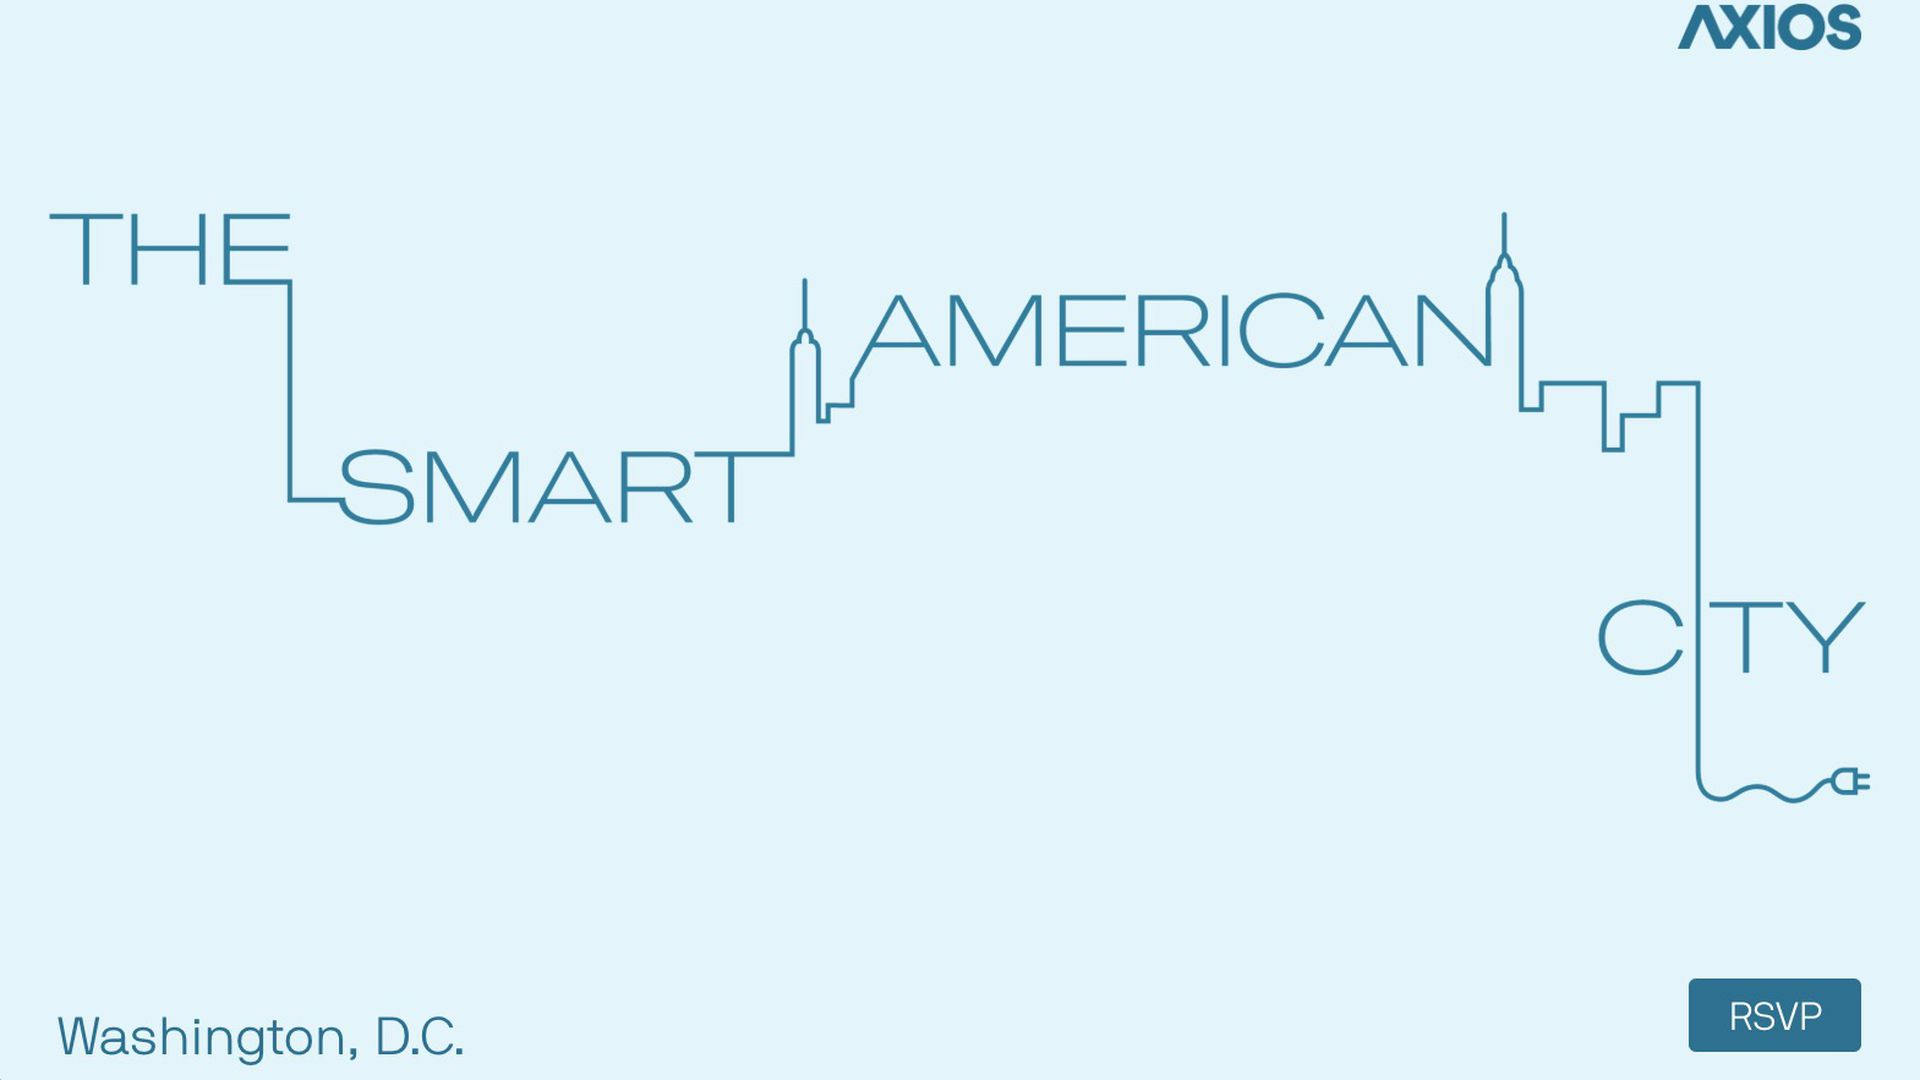 """Outline of a city with the text """"The Smart American City"""""""